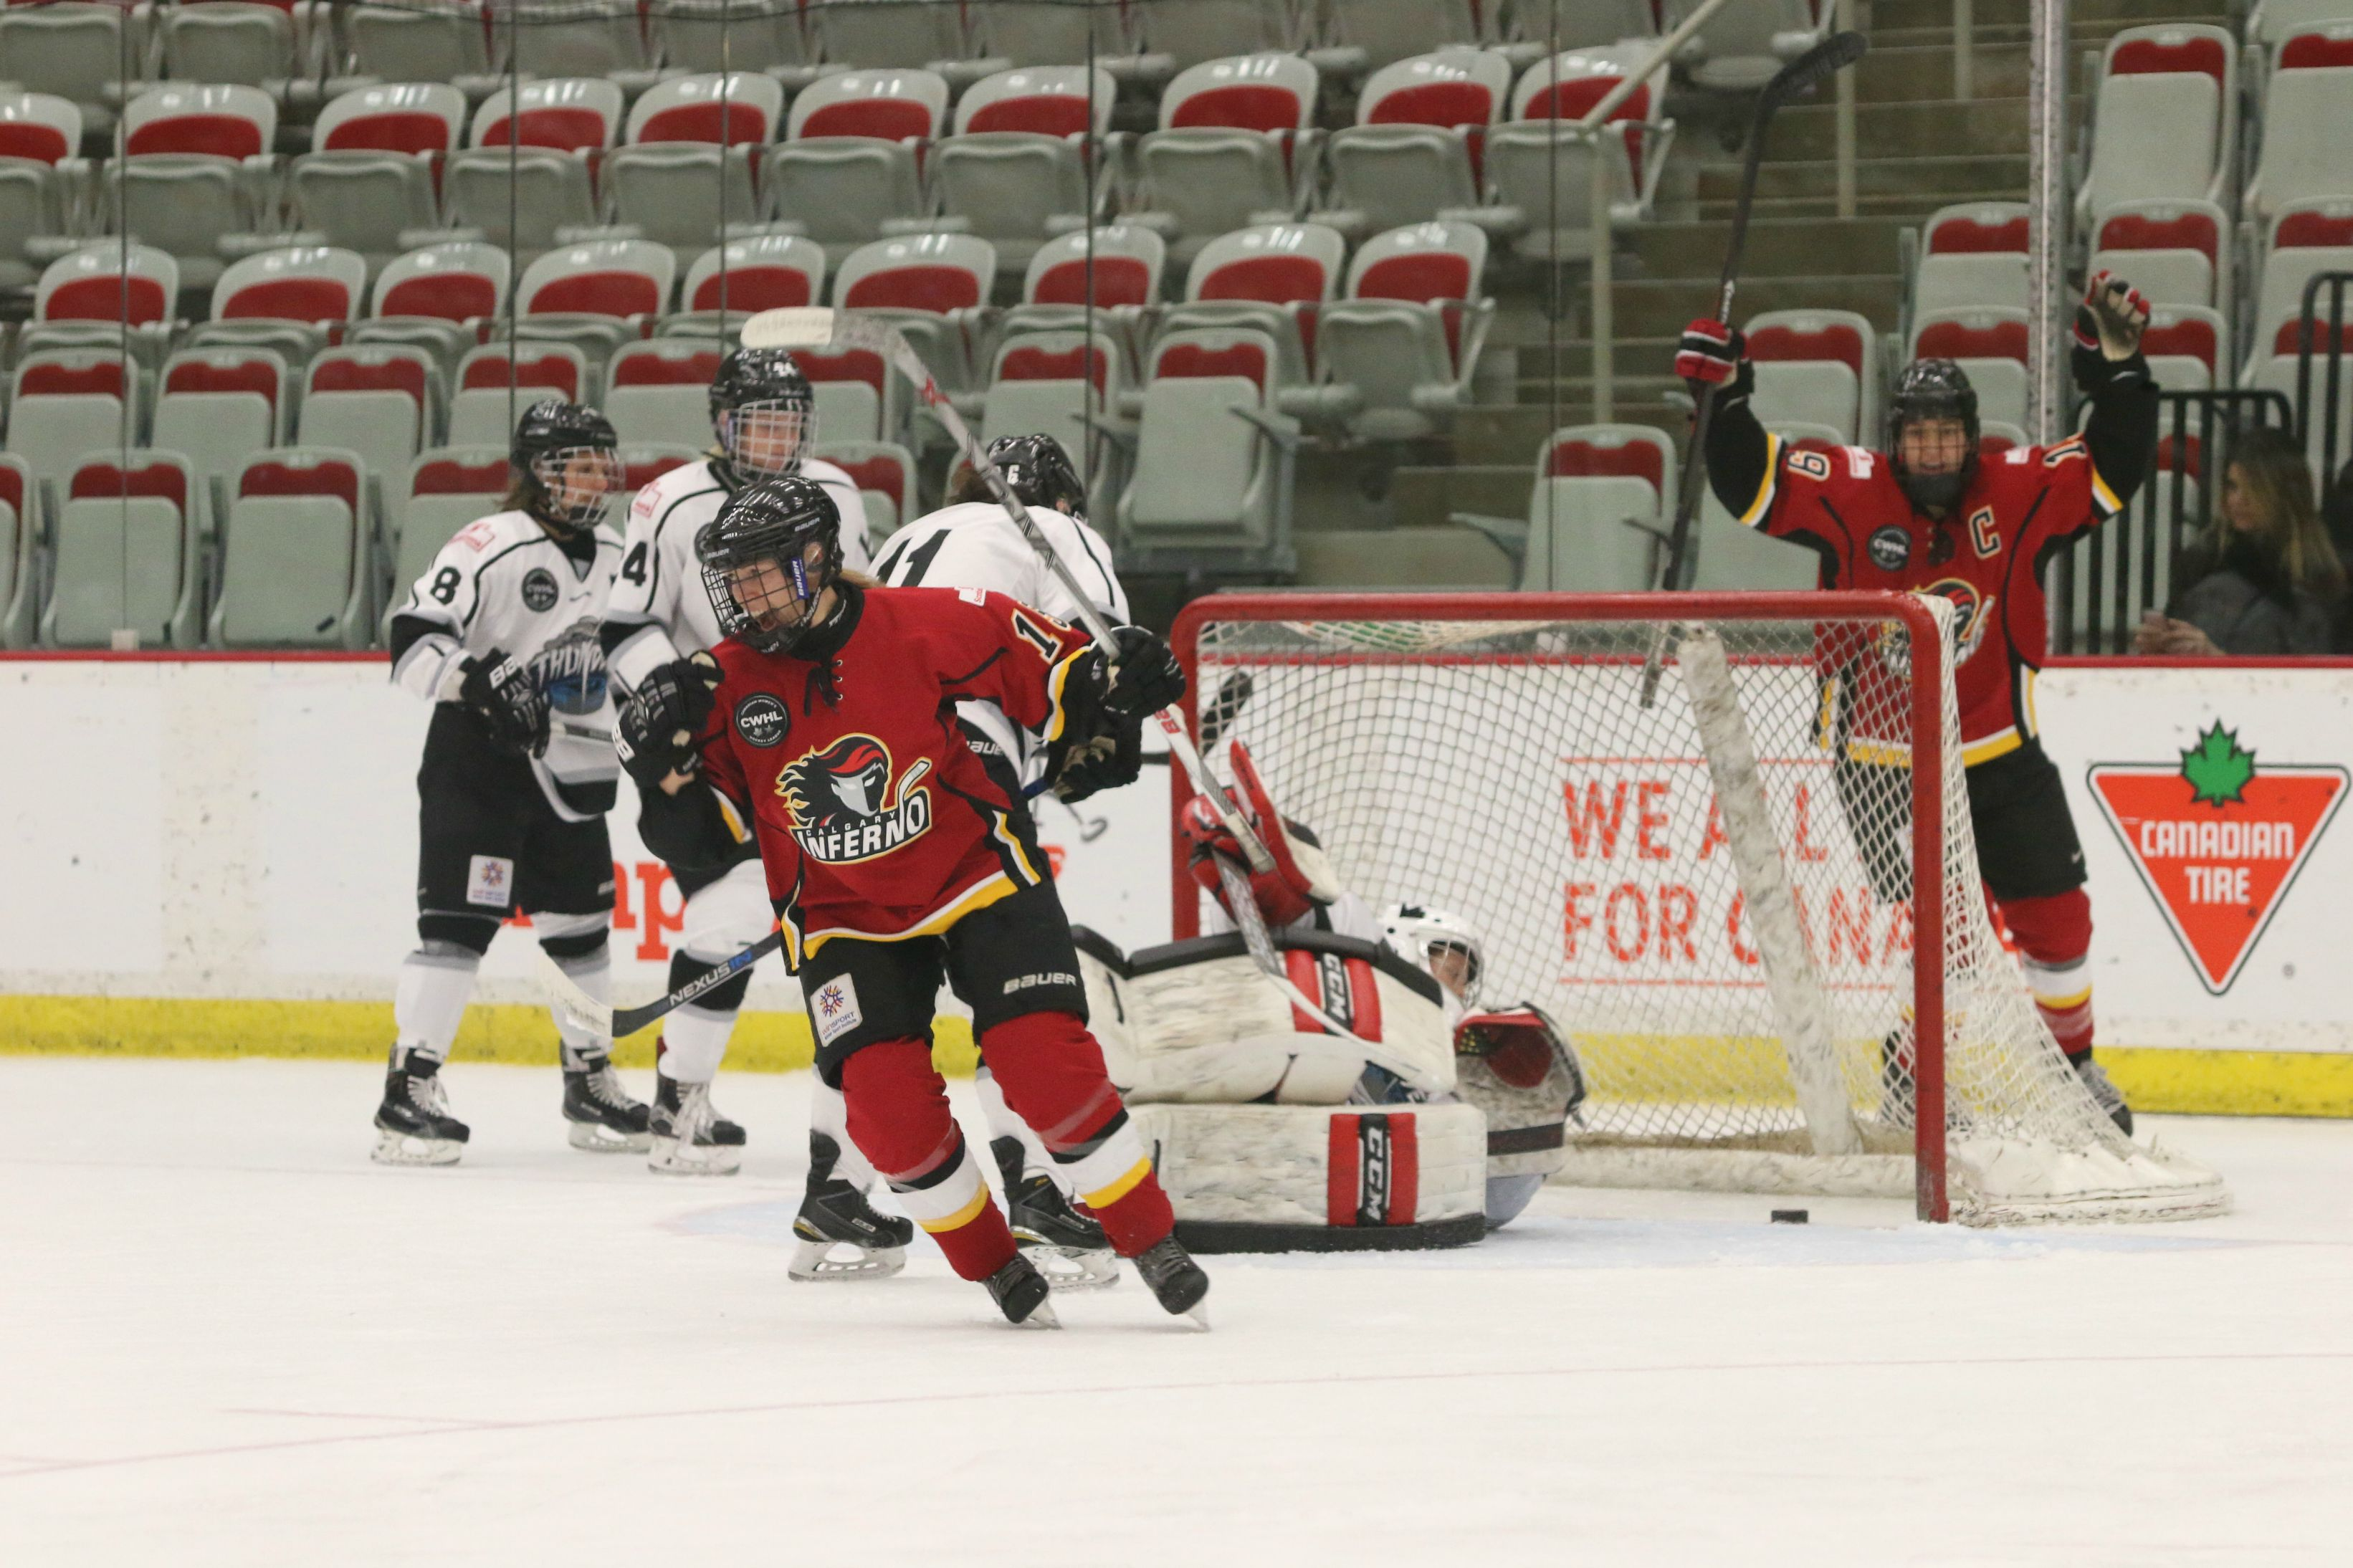 Elana Lovell (center in red) celebrates her first goal of the night, which put the Inferno up 2-0 on Brampton. Lovell scored twice Saturday night, putting her further ahead in the CWHL's scoring race.